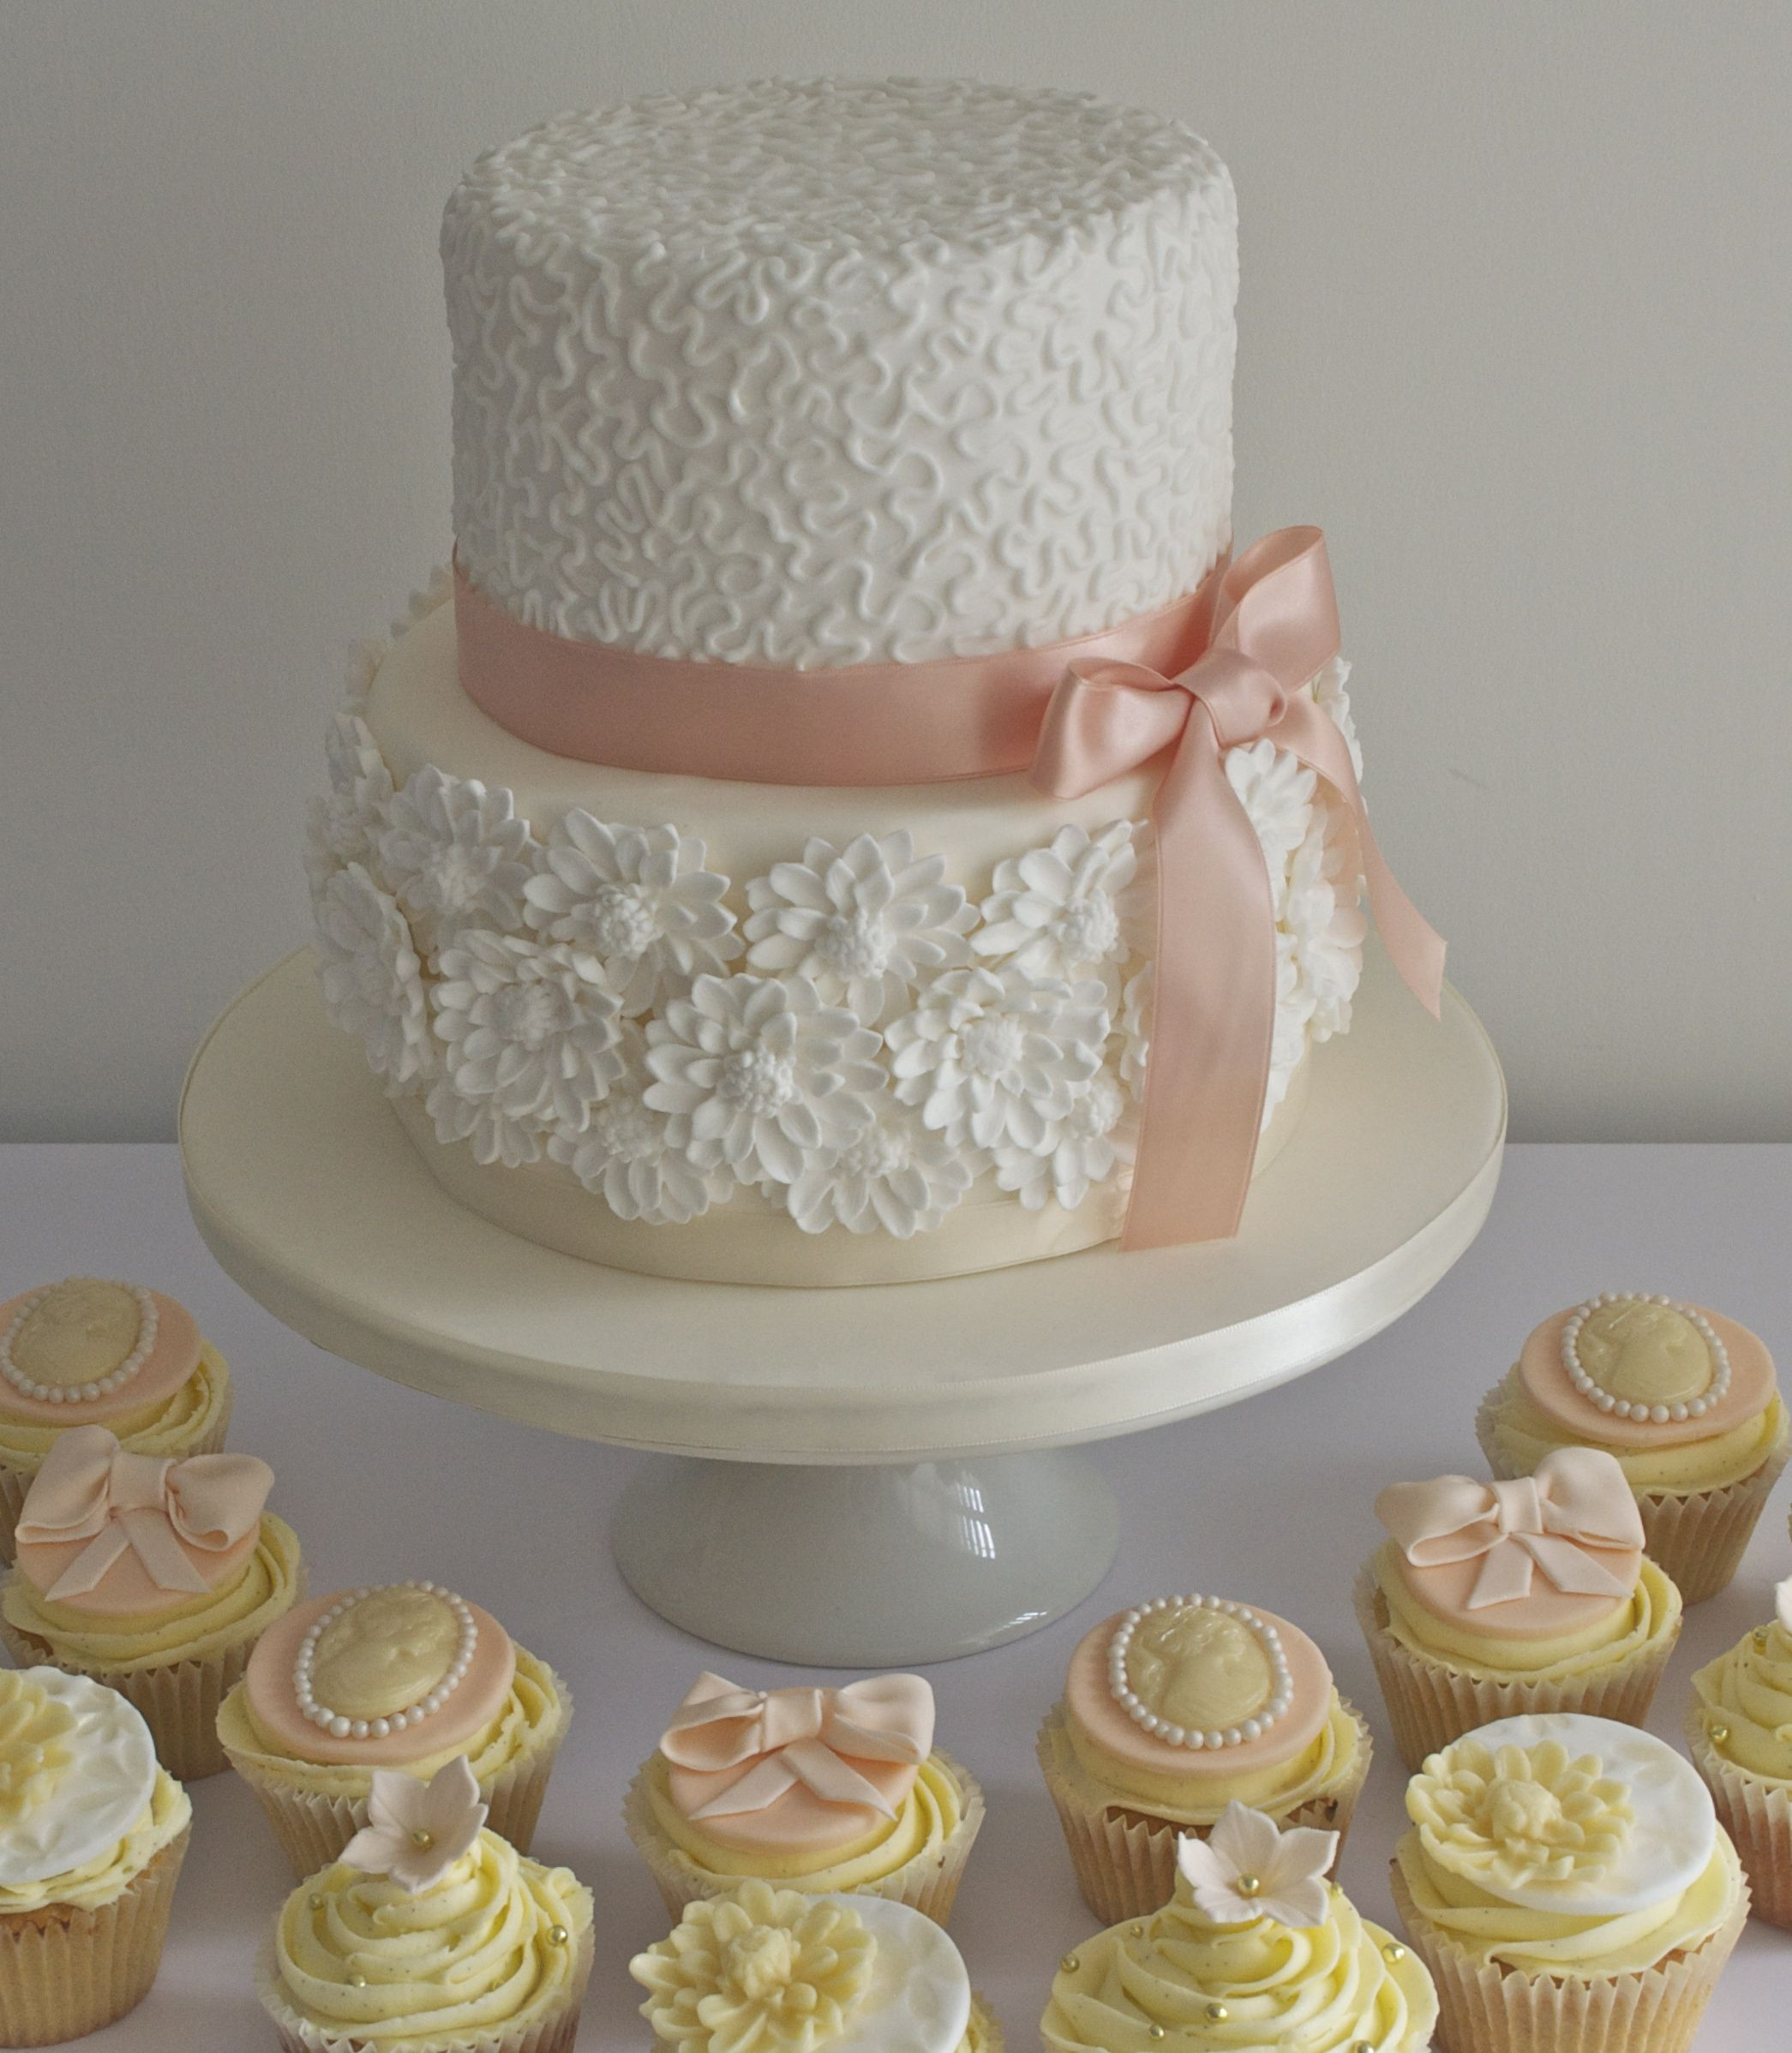 2 tier wedding cake on pedestal with cupcakes